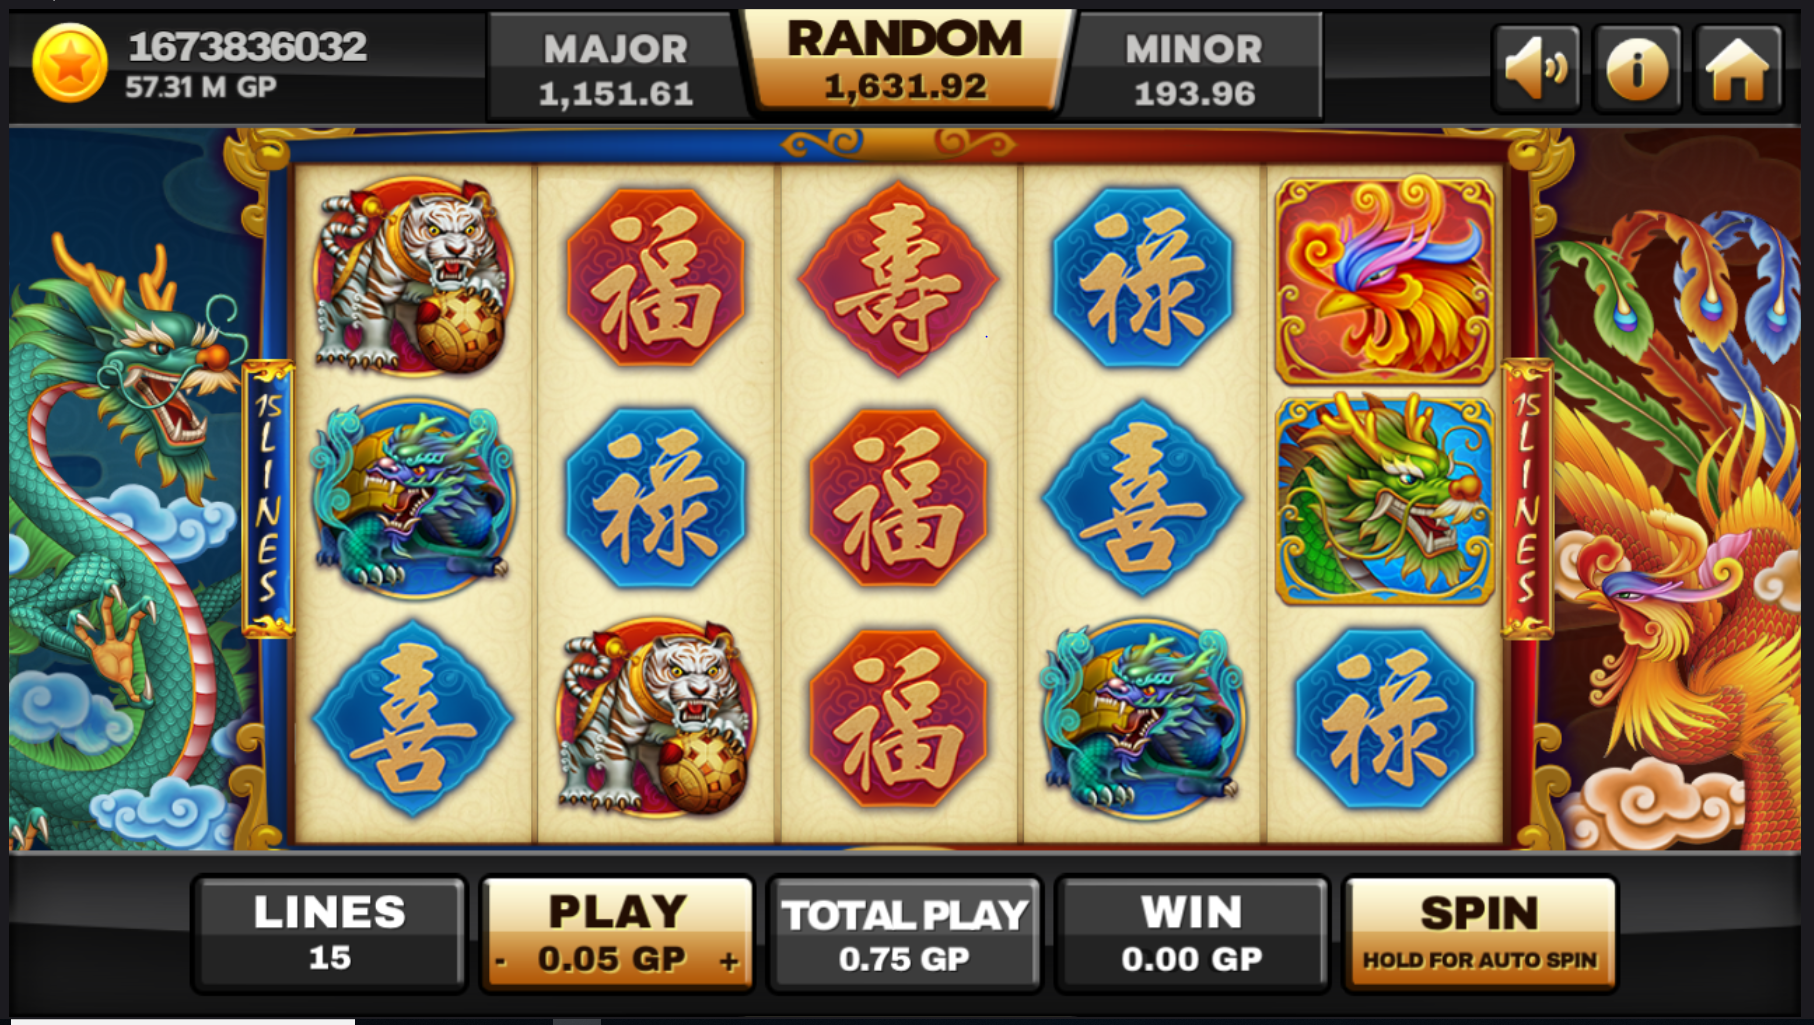 Play more and win more with Slot daftar slot